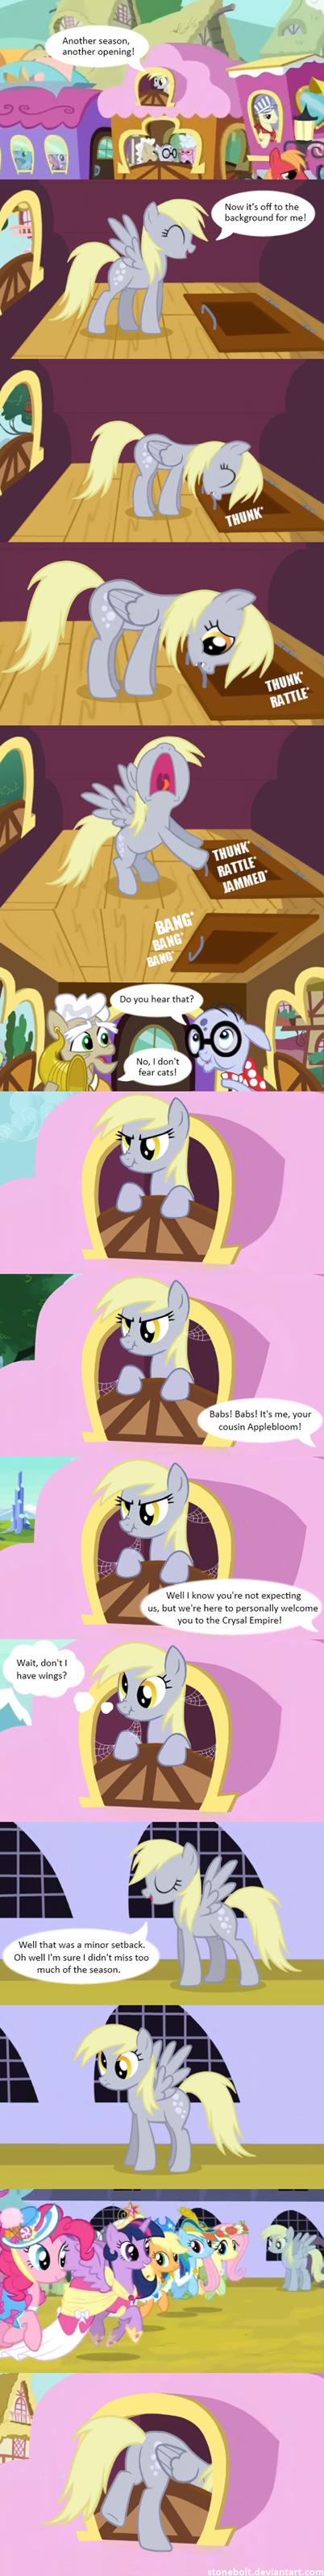 bolt of stone,derpy hooves,amazing comic,comic,opening